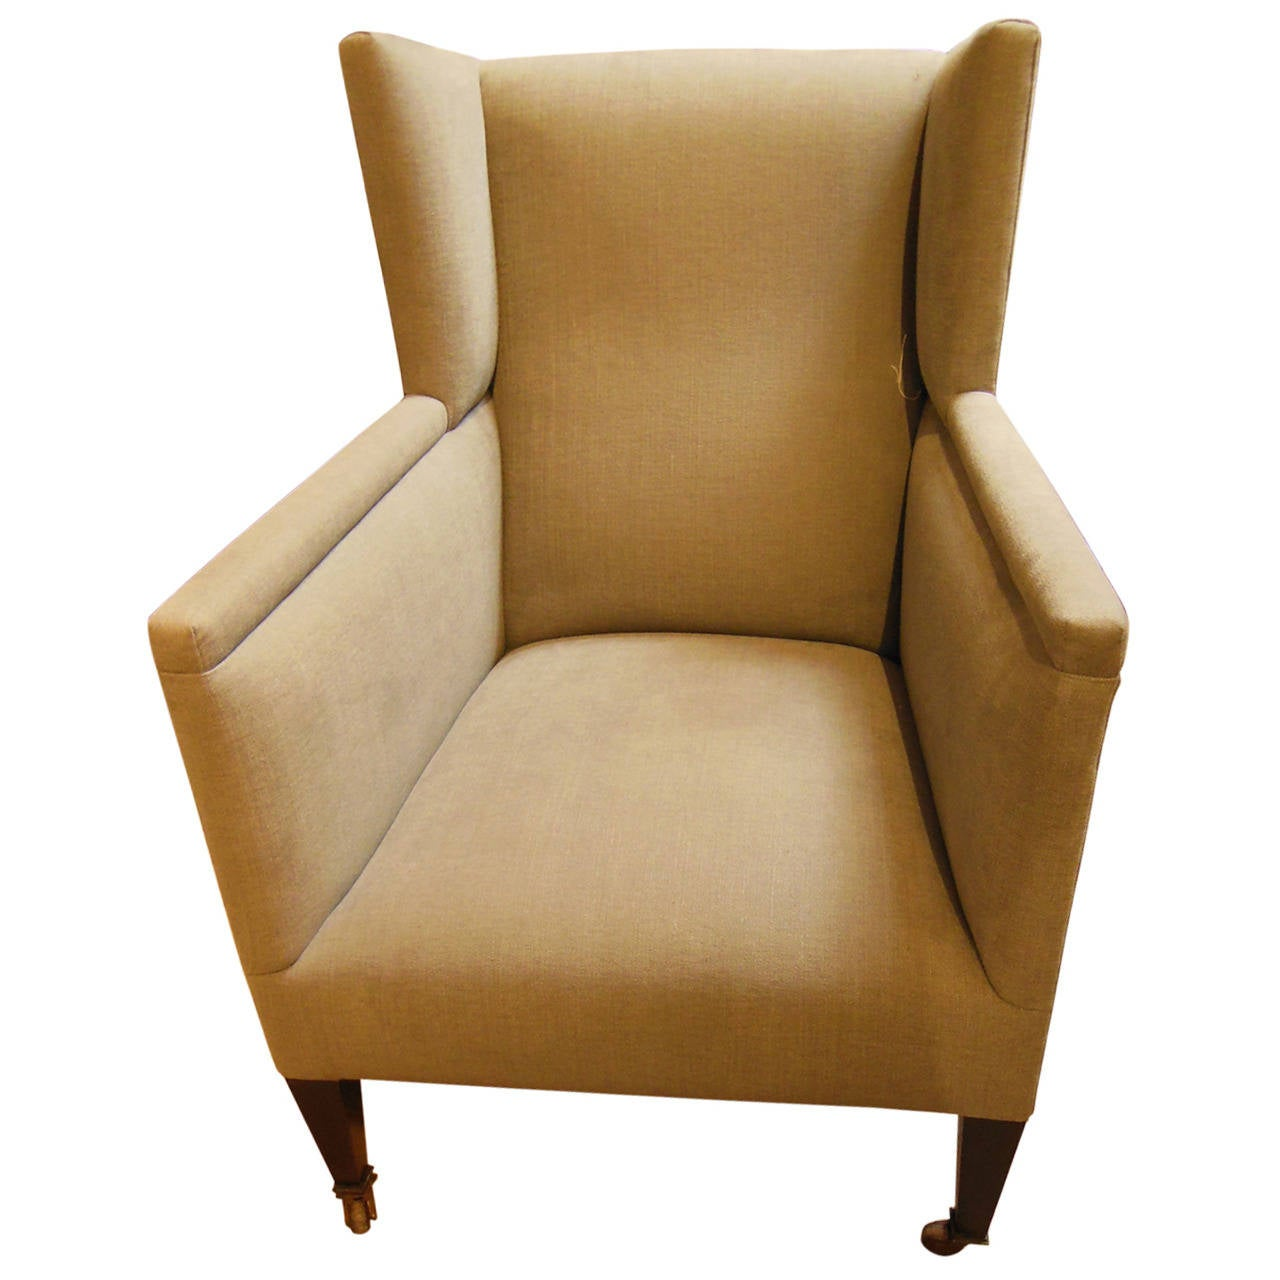 Small vintage modern wing chair at 1stdibs for Small contemporary armchairs